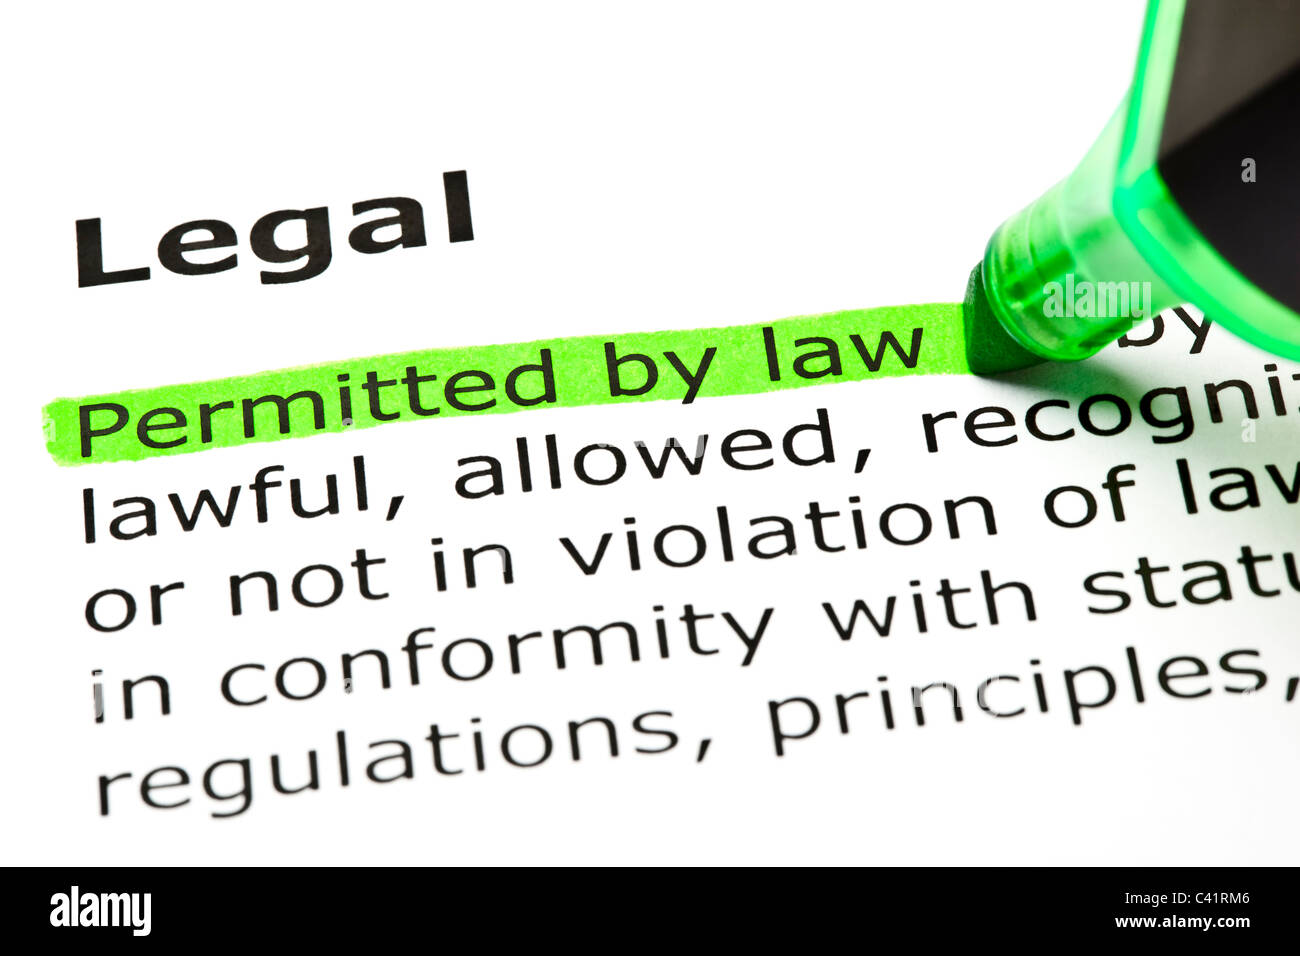 'Permitted by law' highlighted in green, under the heading 'Legal' - Stock Image